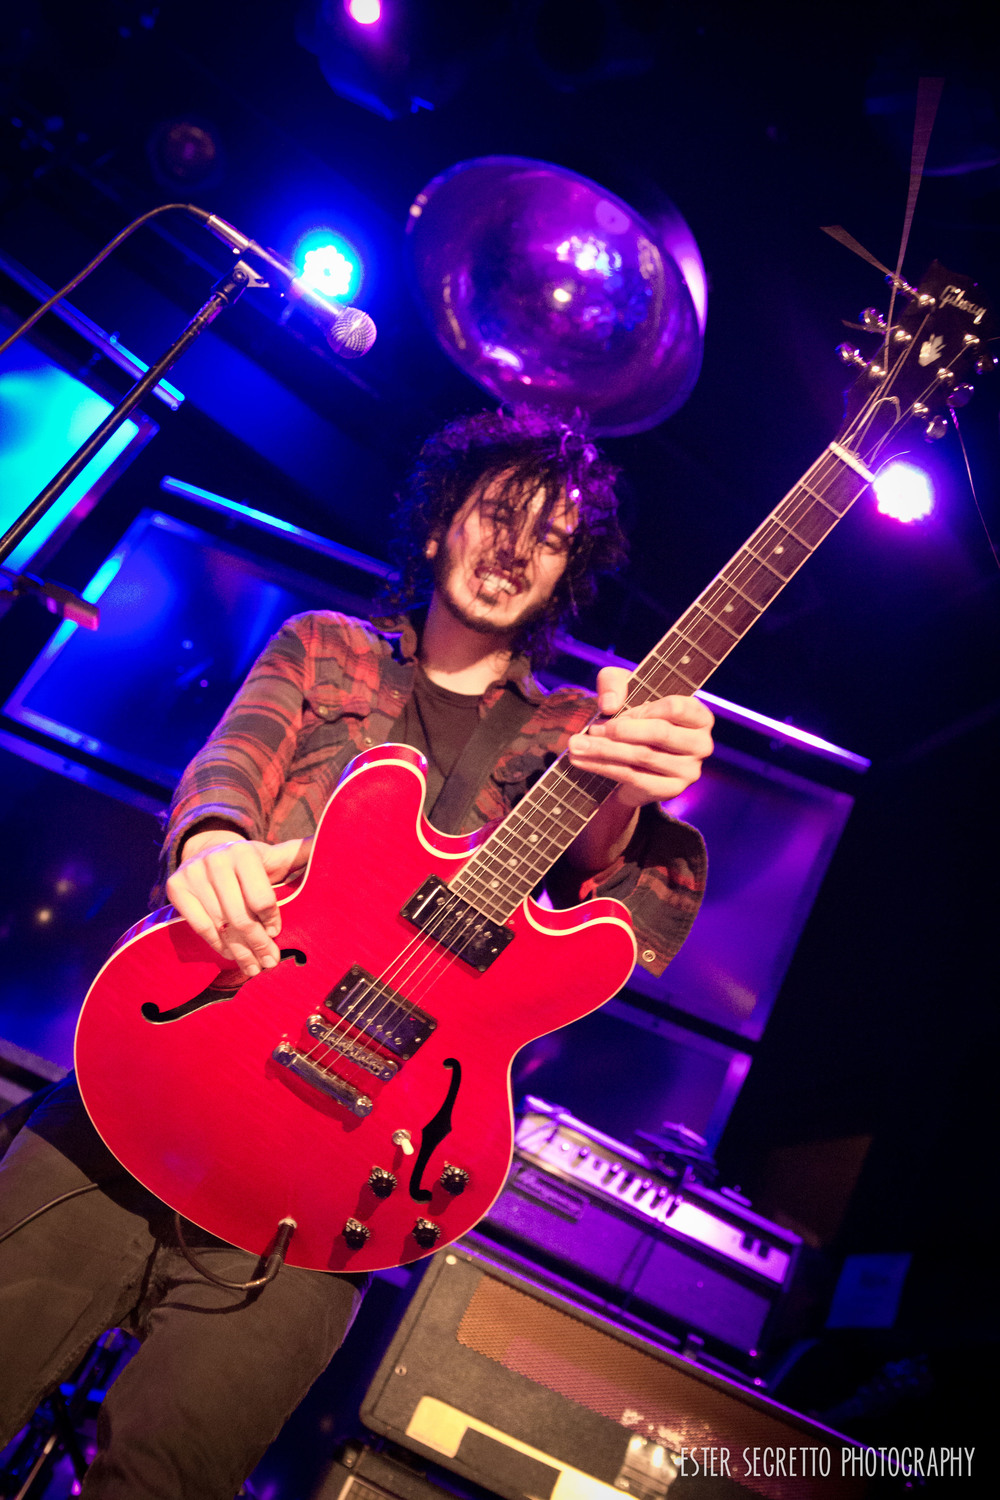 Reignwolf opened for The Pixies in September at Bowery Ballroom. He blew the crowd away with a (mostly) solo and (all) amazing performance that created the sound of multiple musicians.